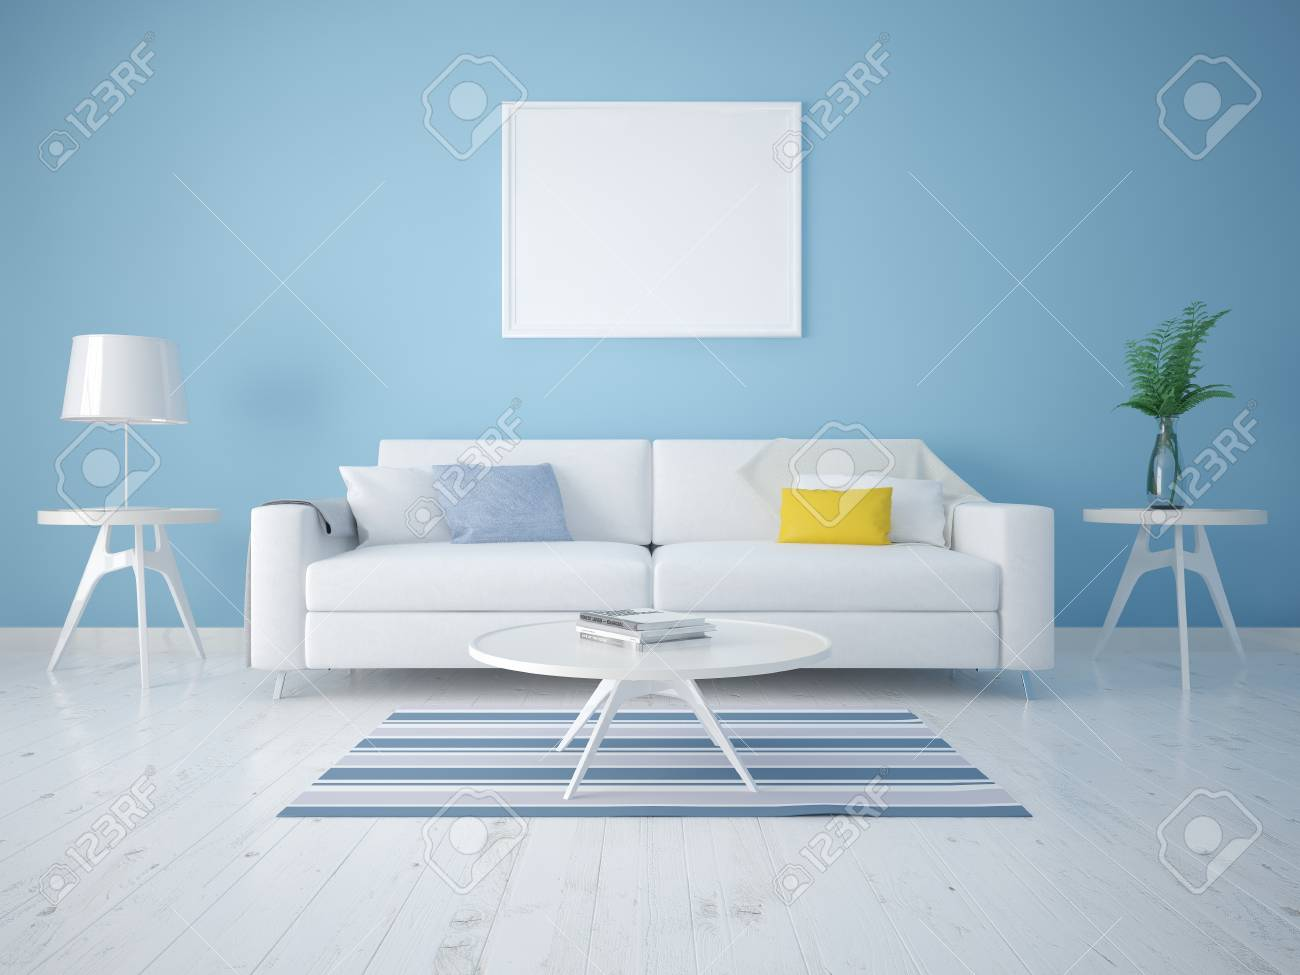 Mock Up A Modern Living Room With A Compact Sofa On A Background Stock Photo Picture And Royalty Free Image Image 95187186